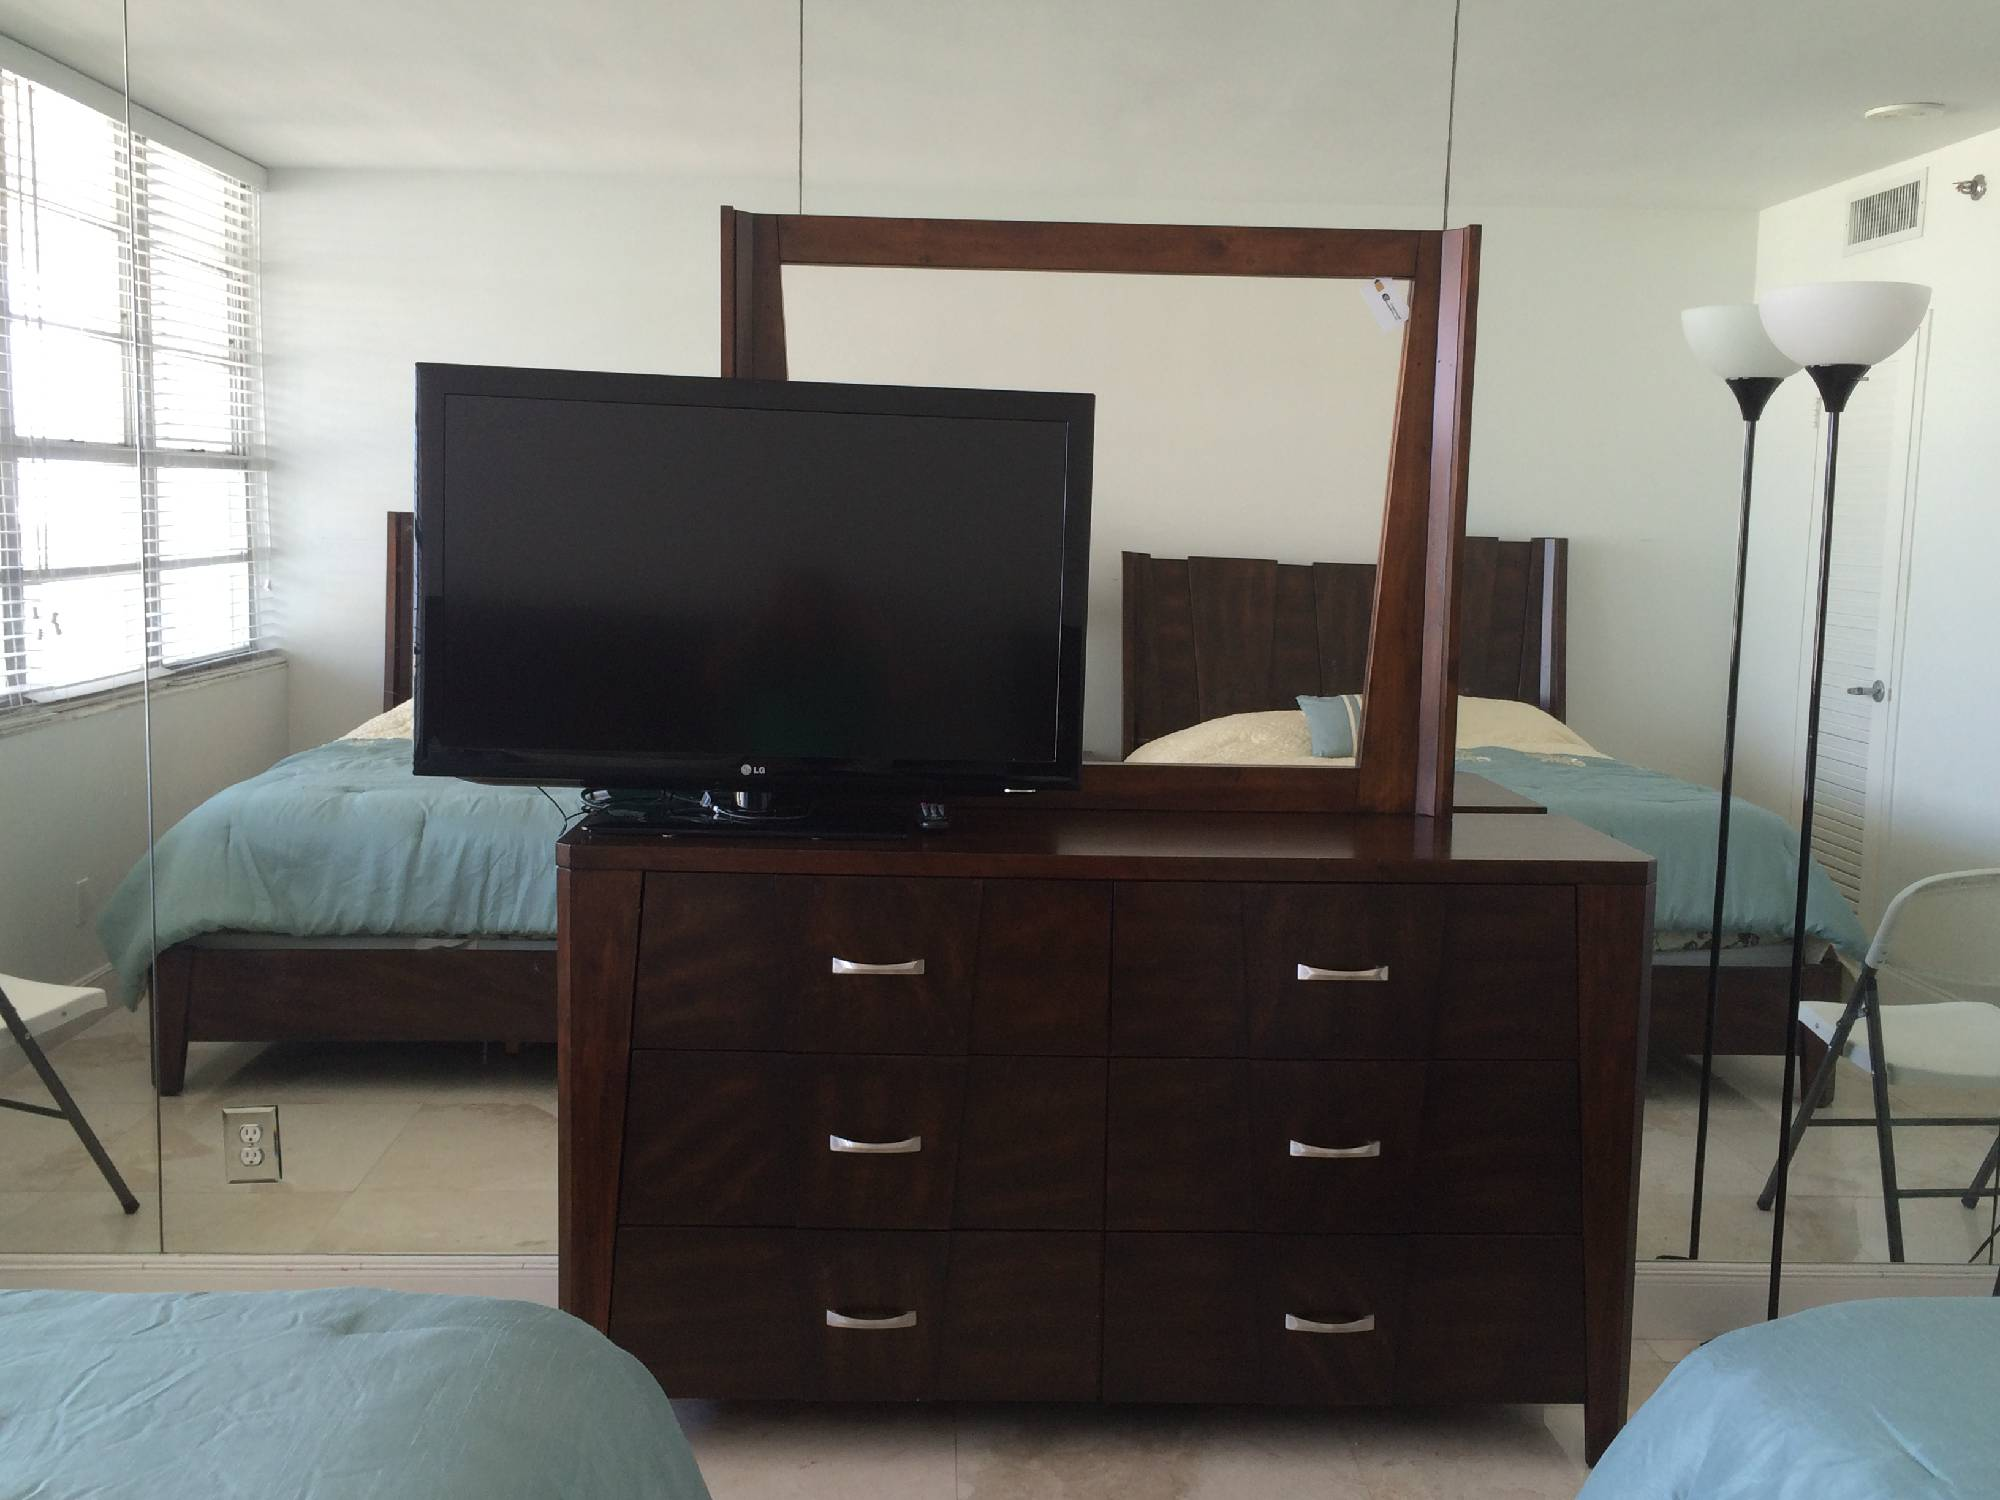 bedroom mirror and TV